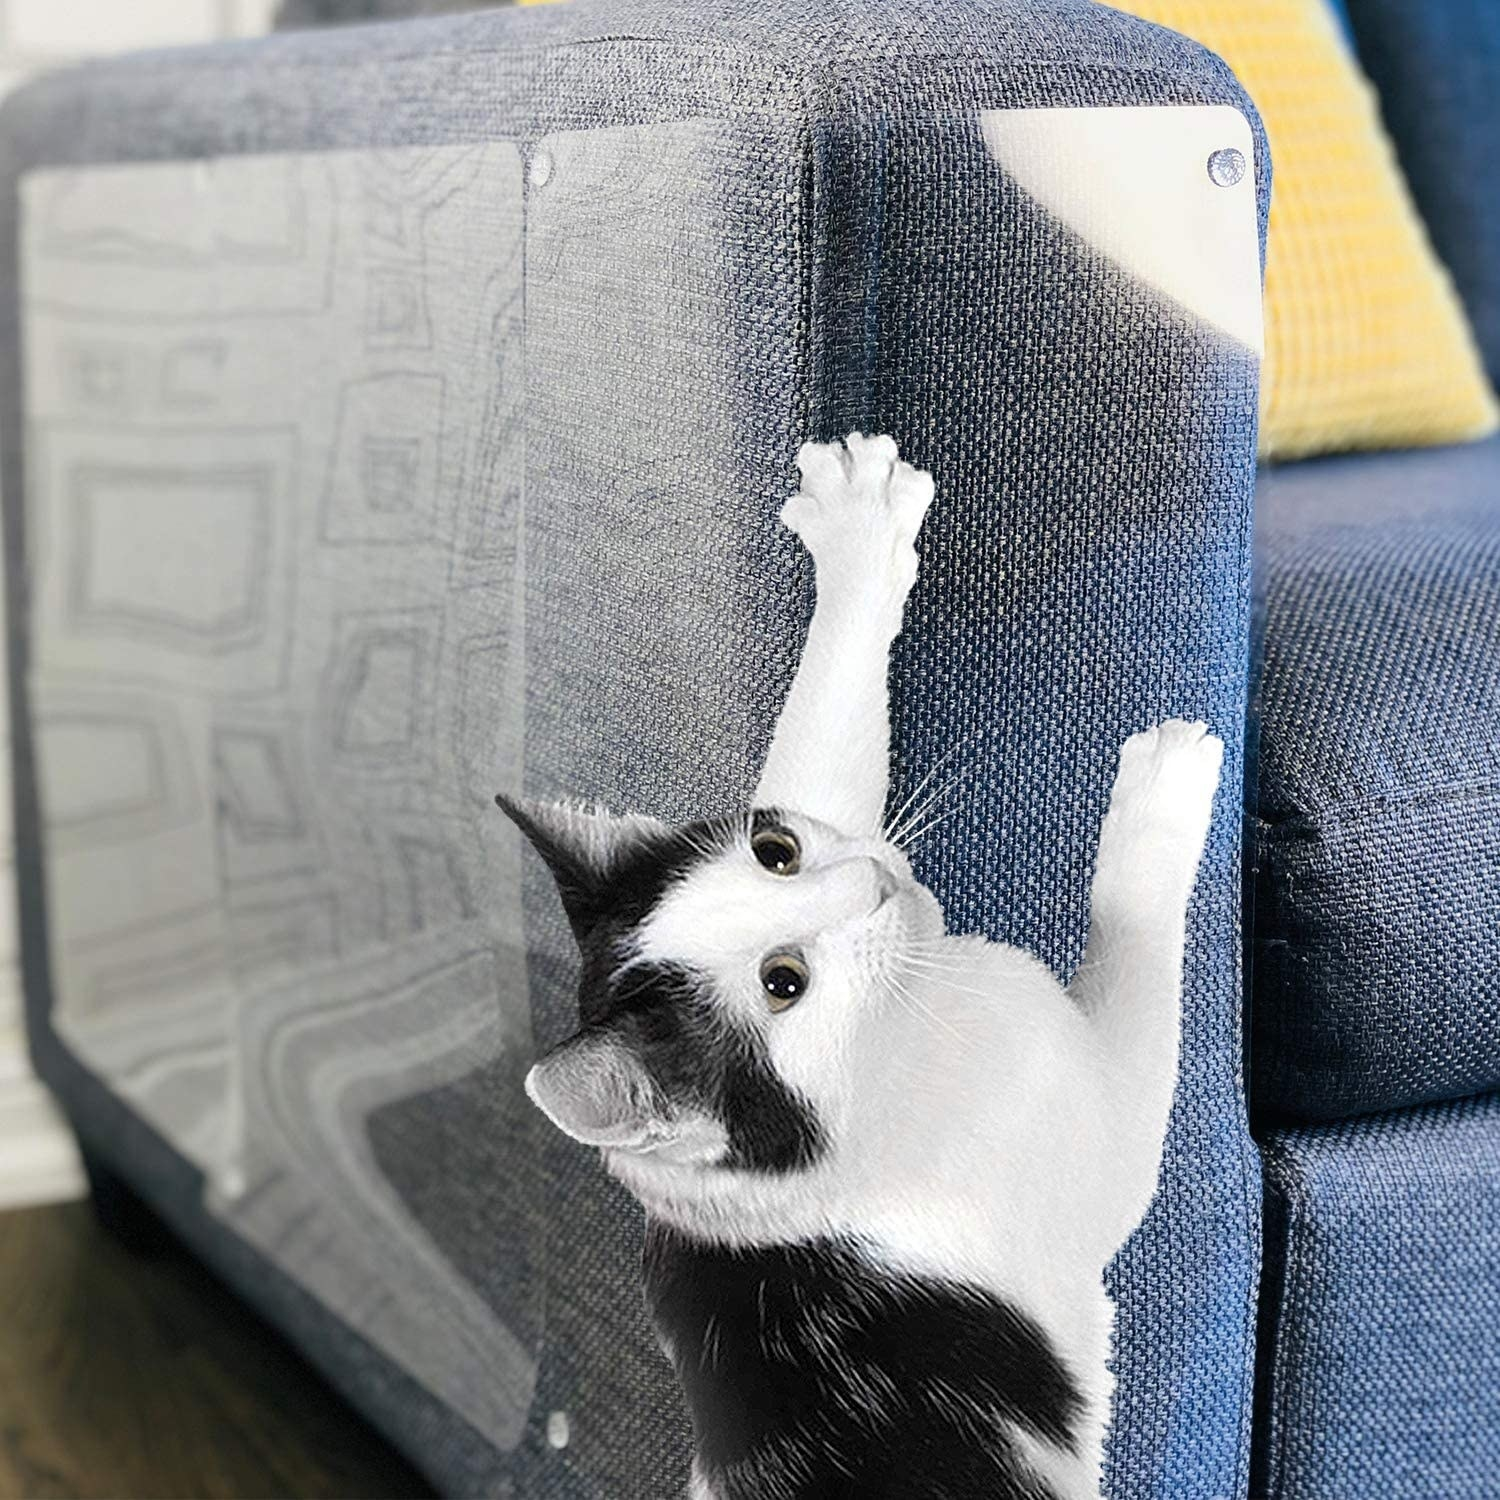 A cat scratching a couch with shields on it